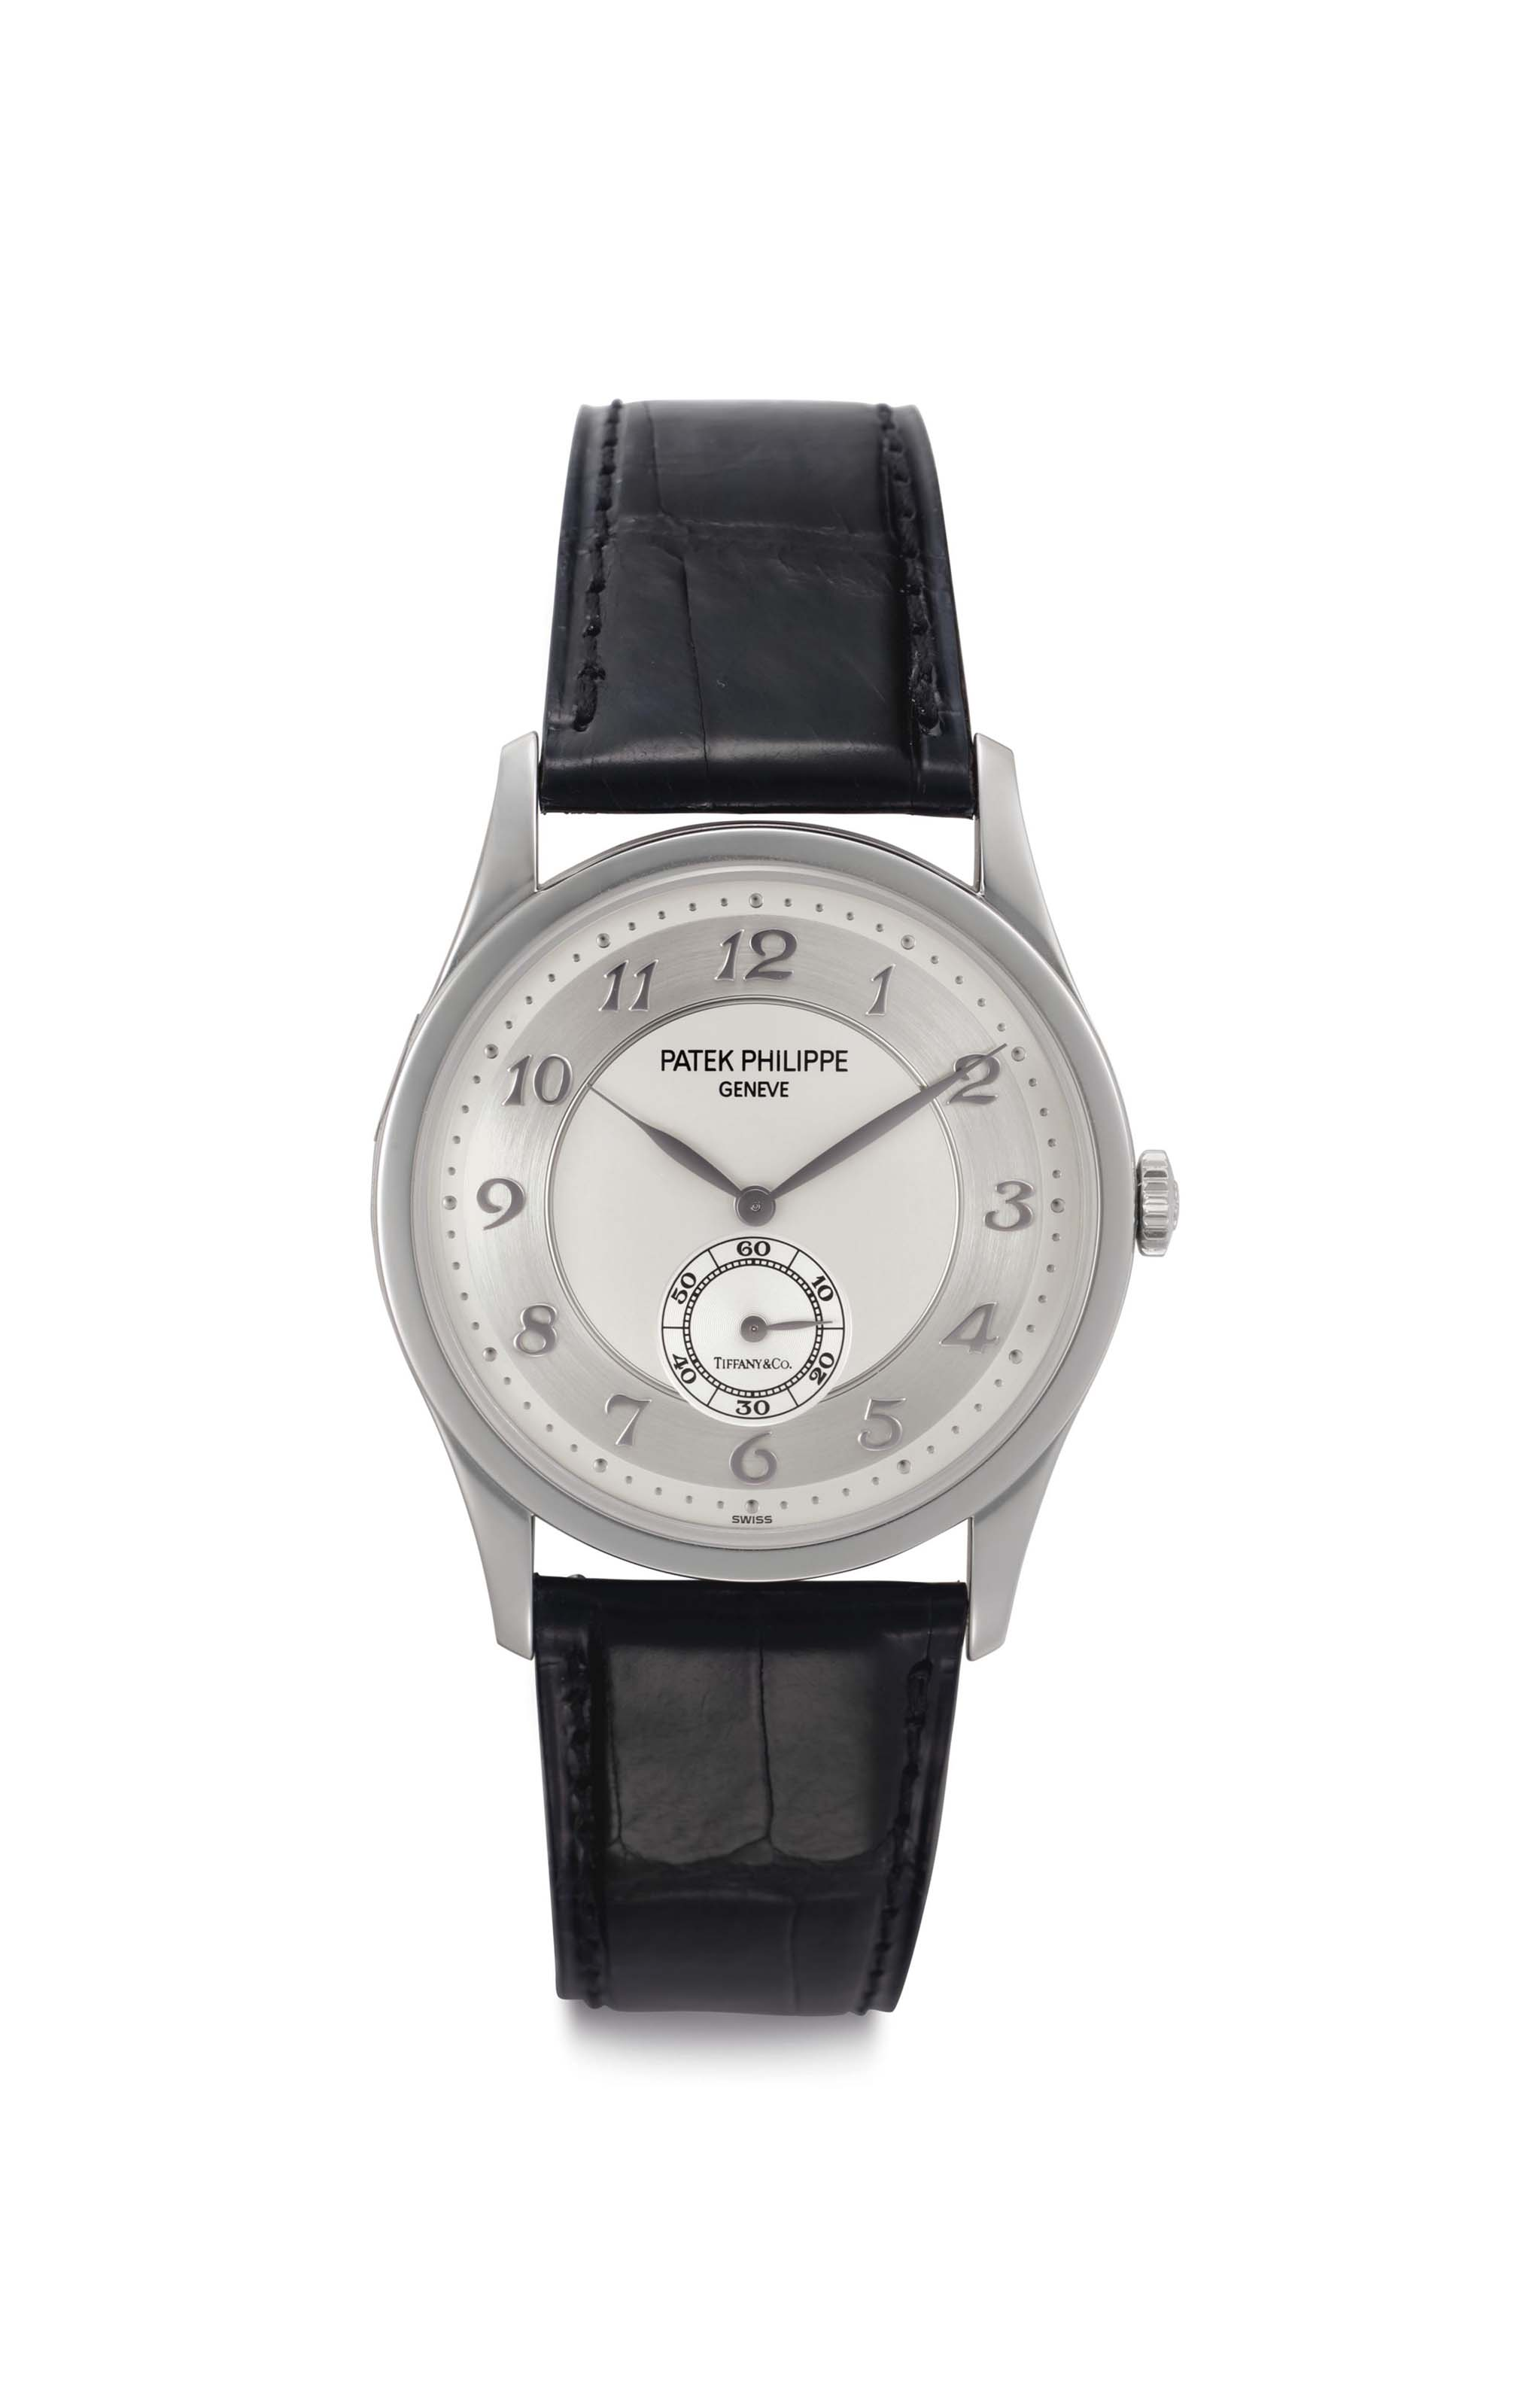 Patek Philippe A Platinum Wristwatch With Breguet Numerals And Two